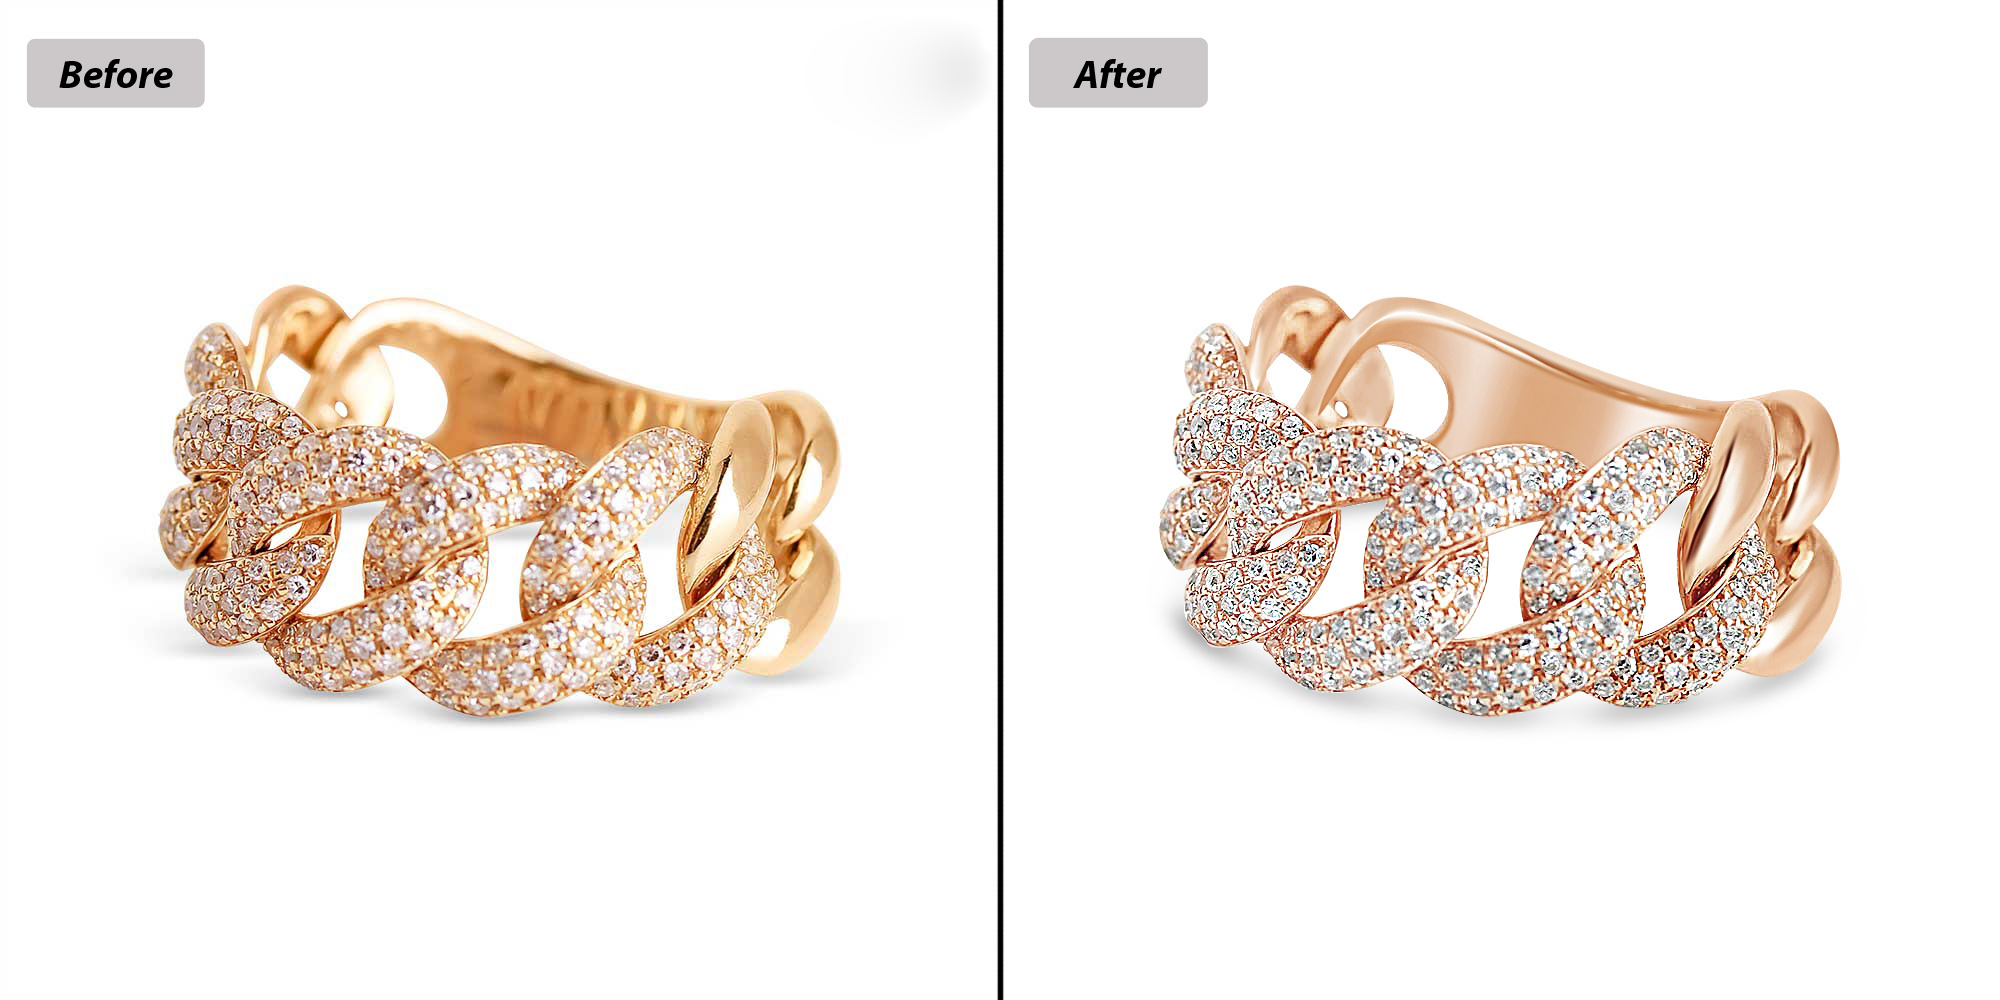 Clipping Charm_jewellery retouch 045